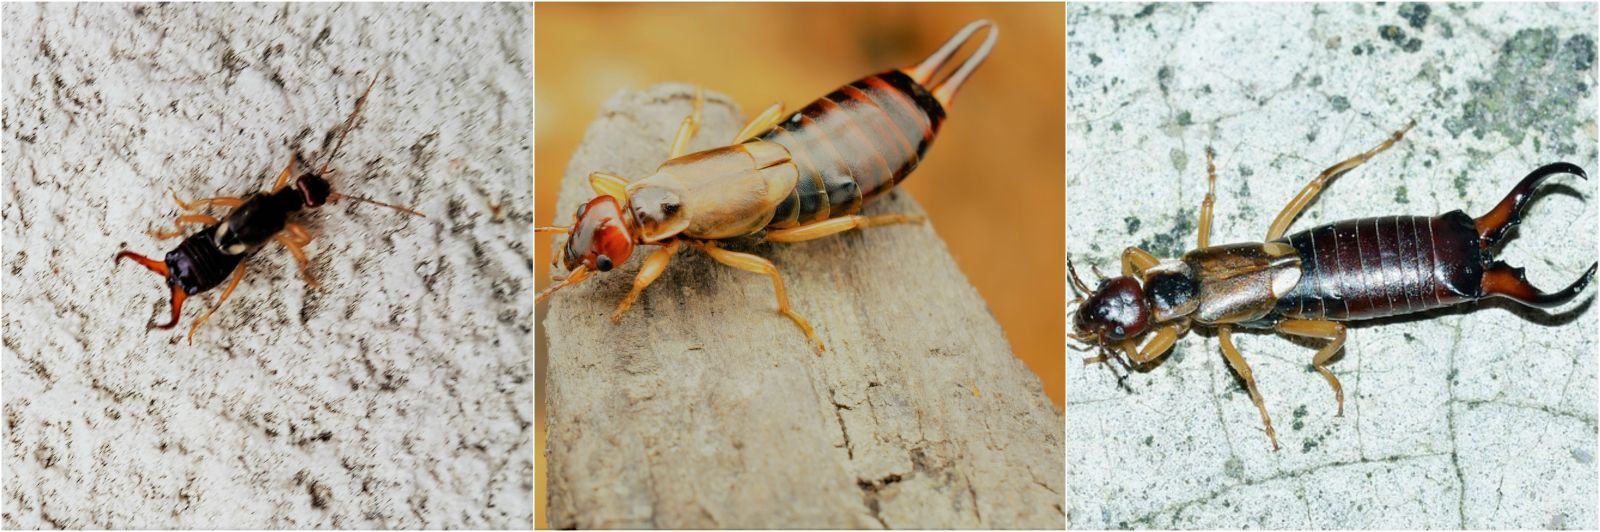 A picture of earwigs